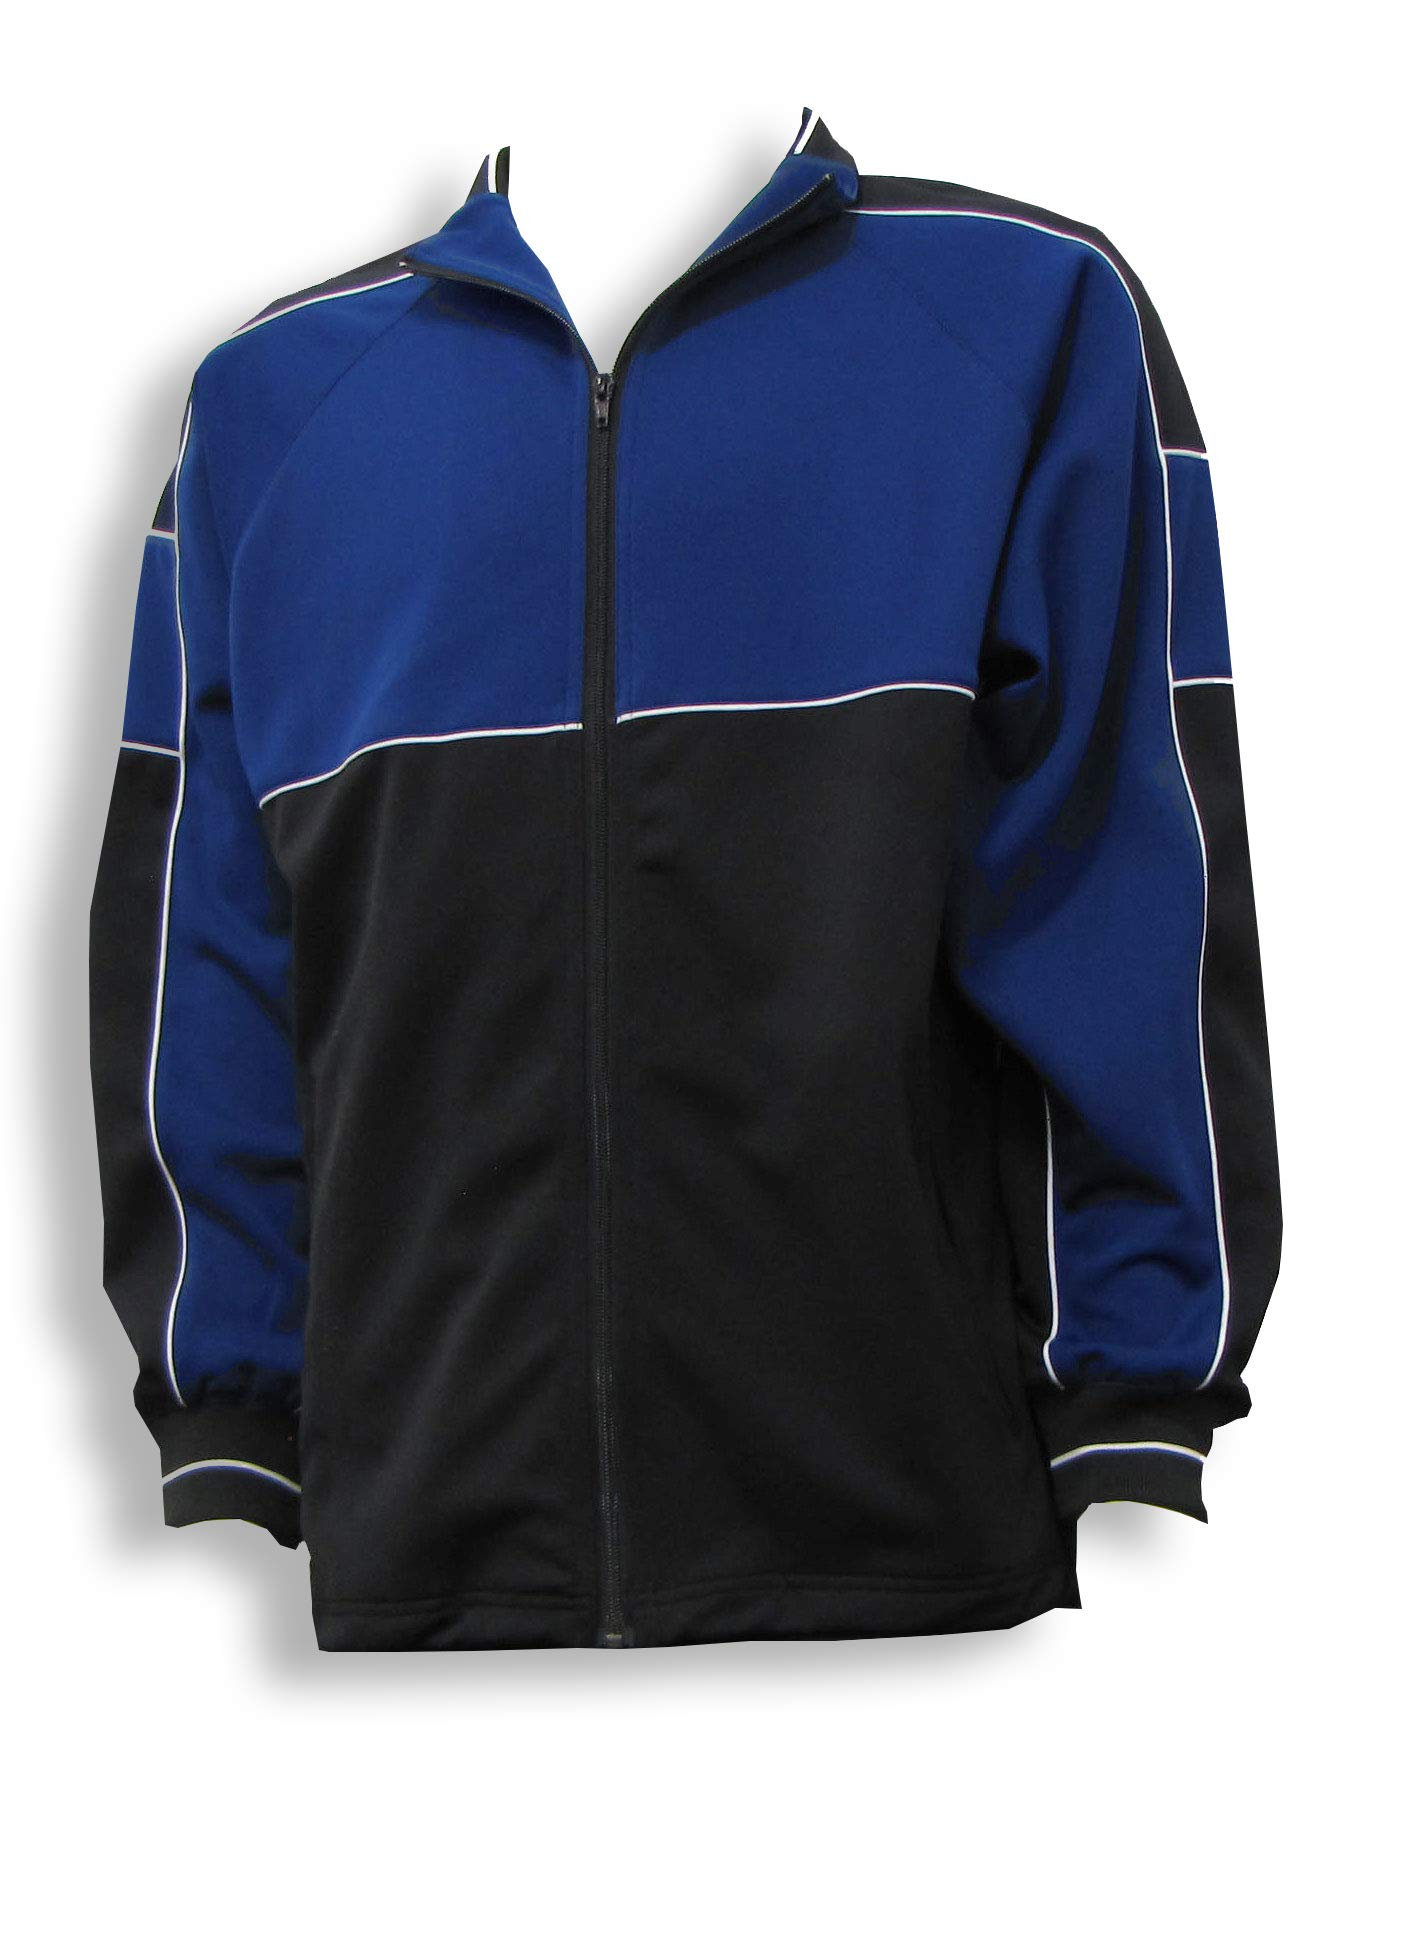 Code Four Athletics Sparta Soccer Poly-Knit Warmup Jacket - Size Youth S - Navy/Black by Code Four Athletics